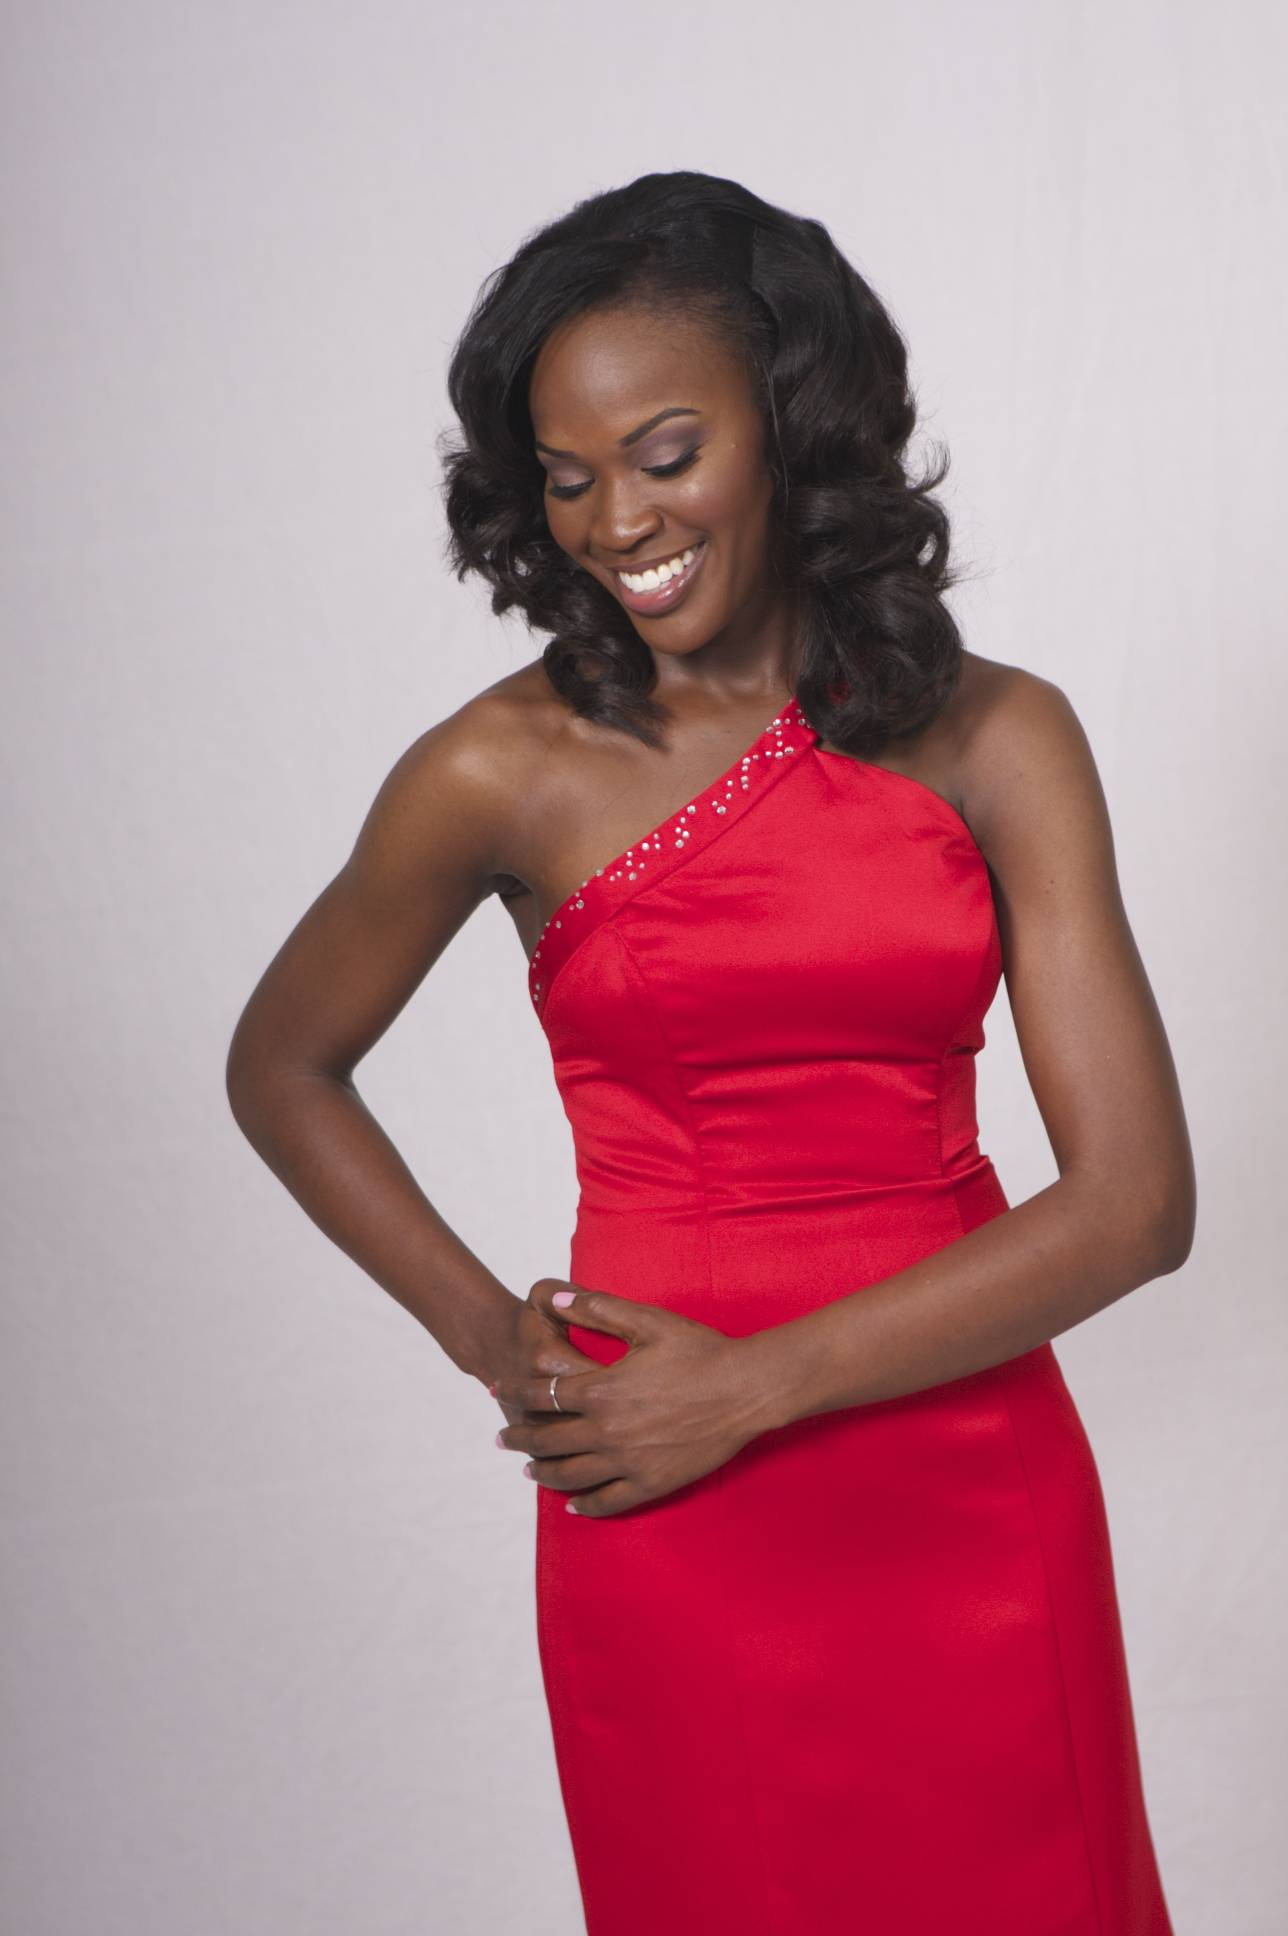 MISS BLACK FLORIDA 2013